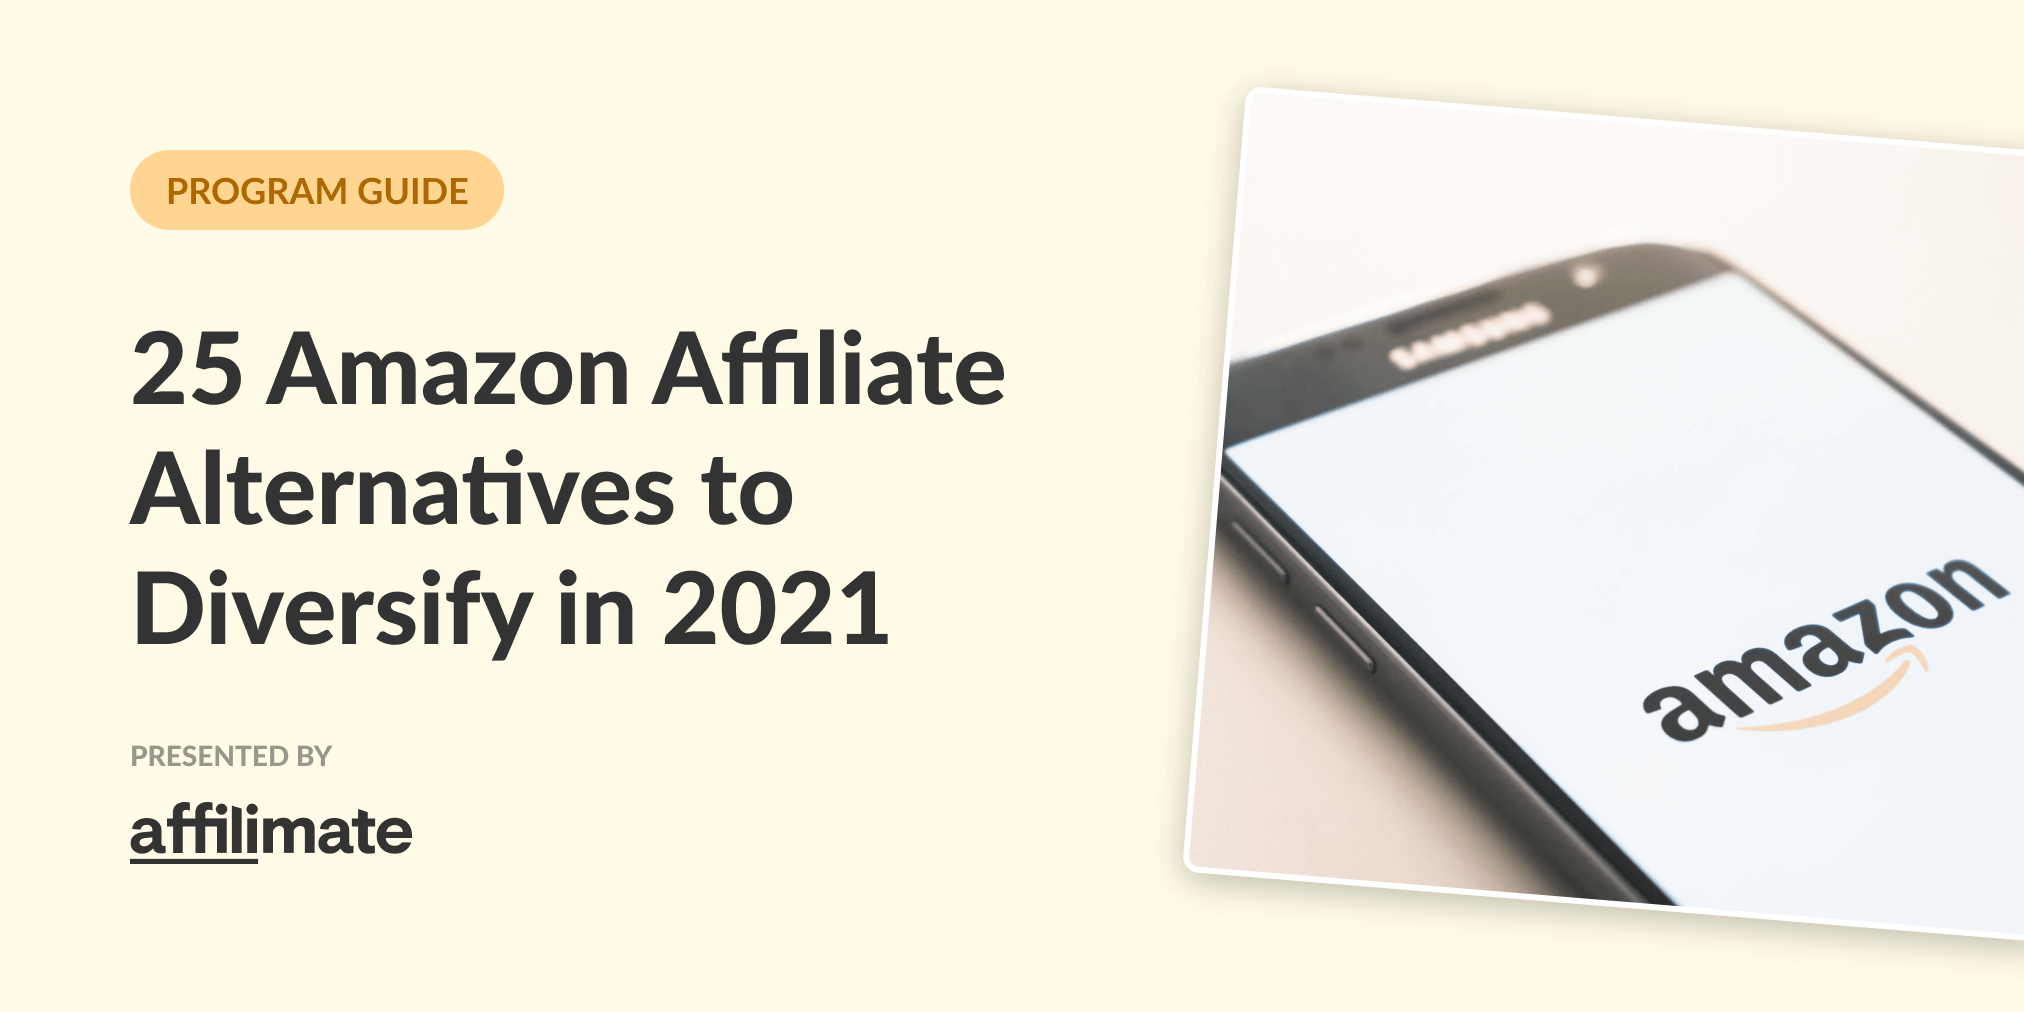 25 Amazon Affiliate Program Alternatives to Diversify Your Affiliate Income in 2021